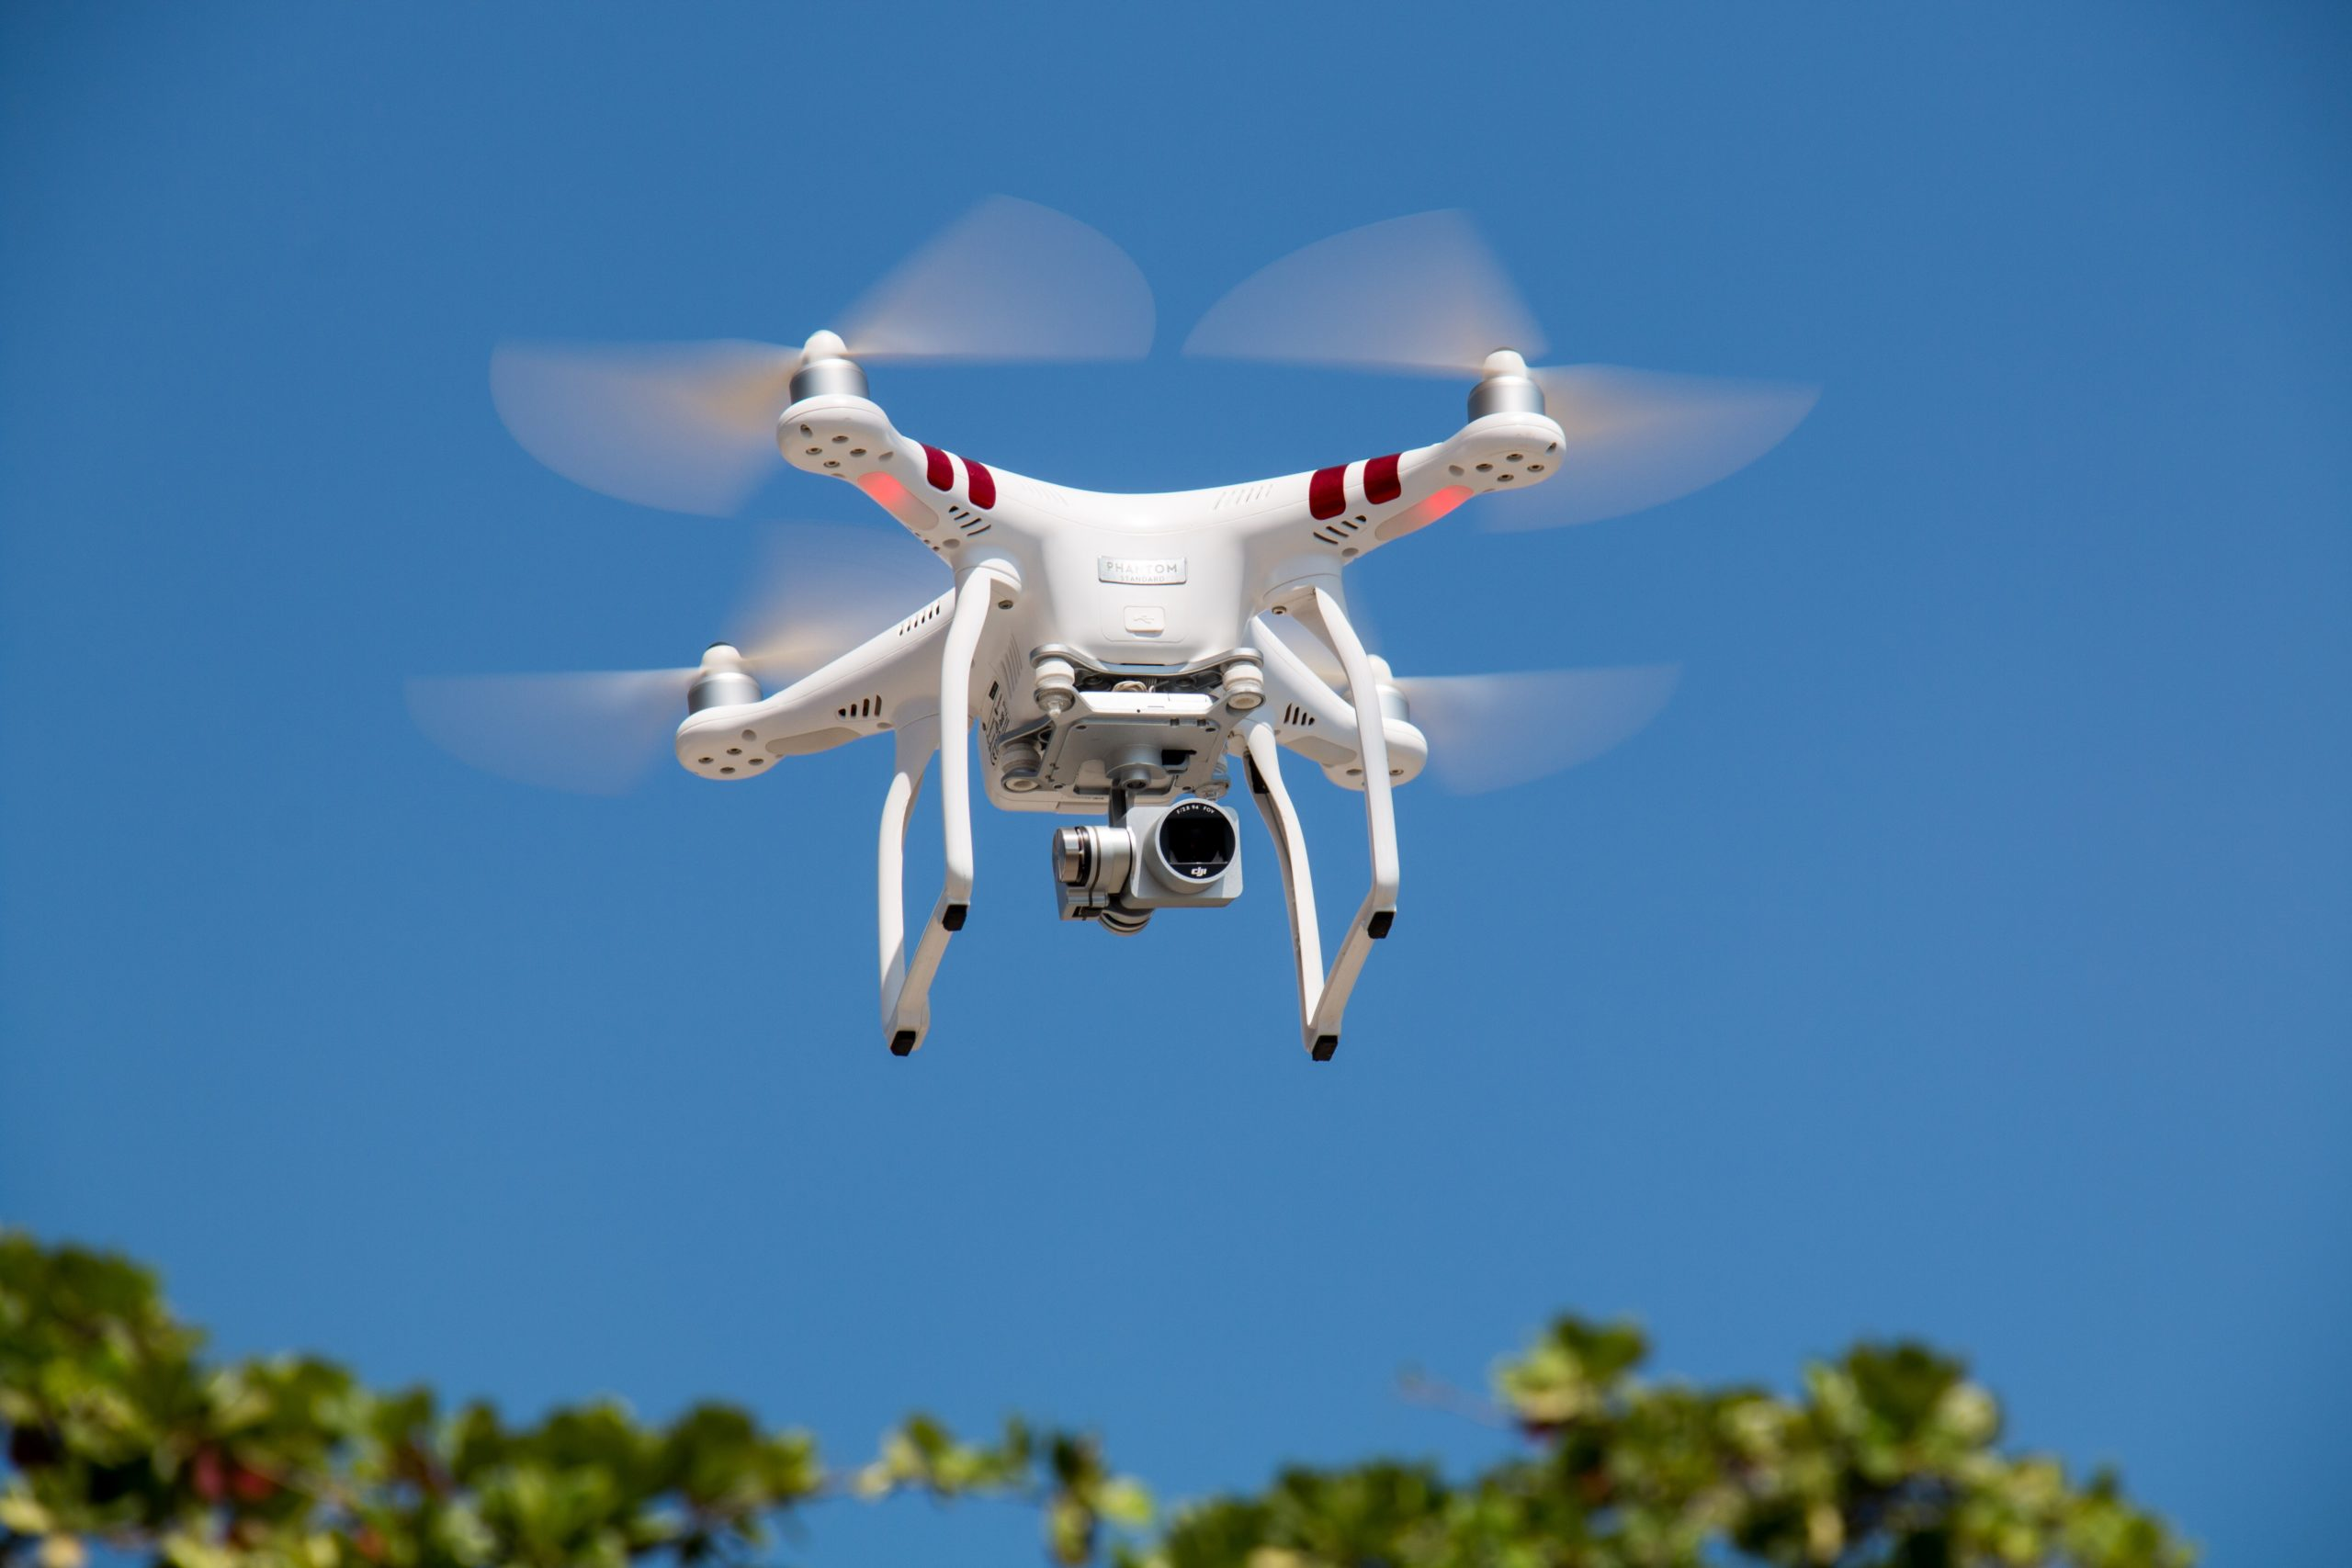 best budget drone with camera uk https://www.pexels.com/photo/drone-flying-against-blue-sky-336232/